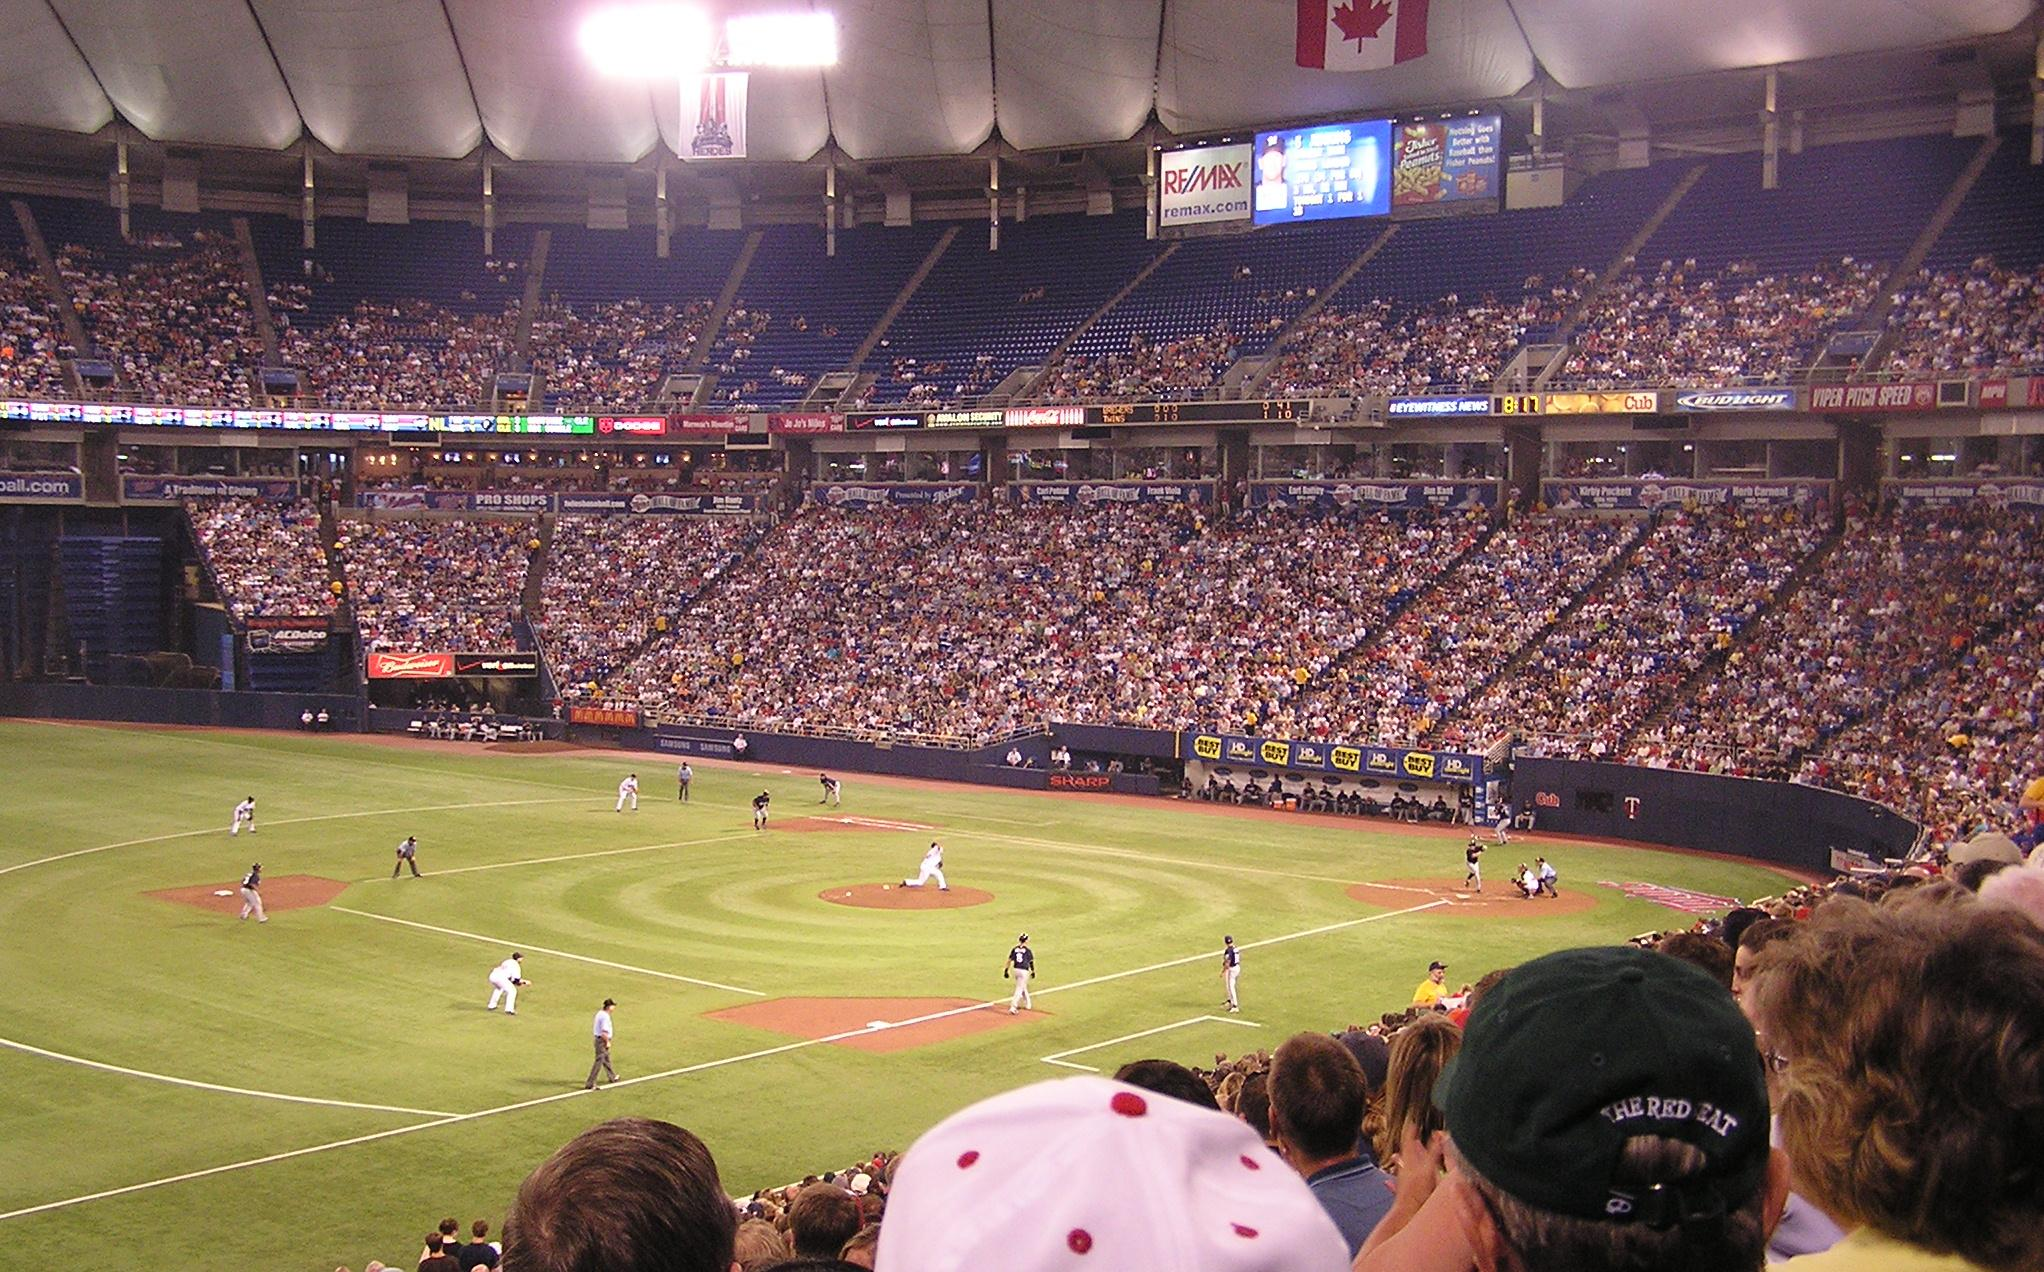 The Metrodome, from the 3rd base side